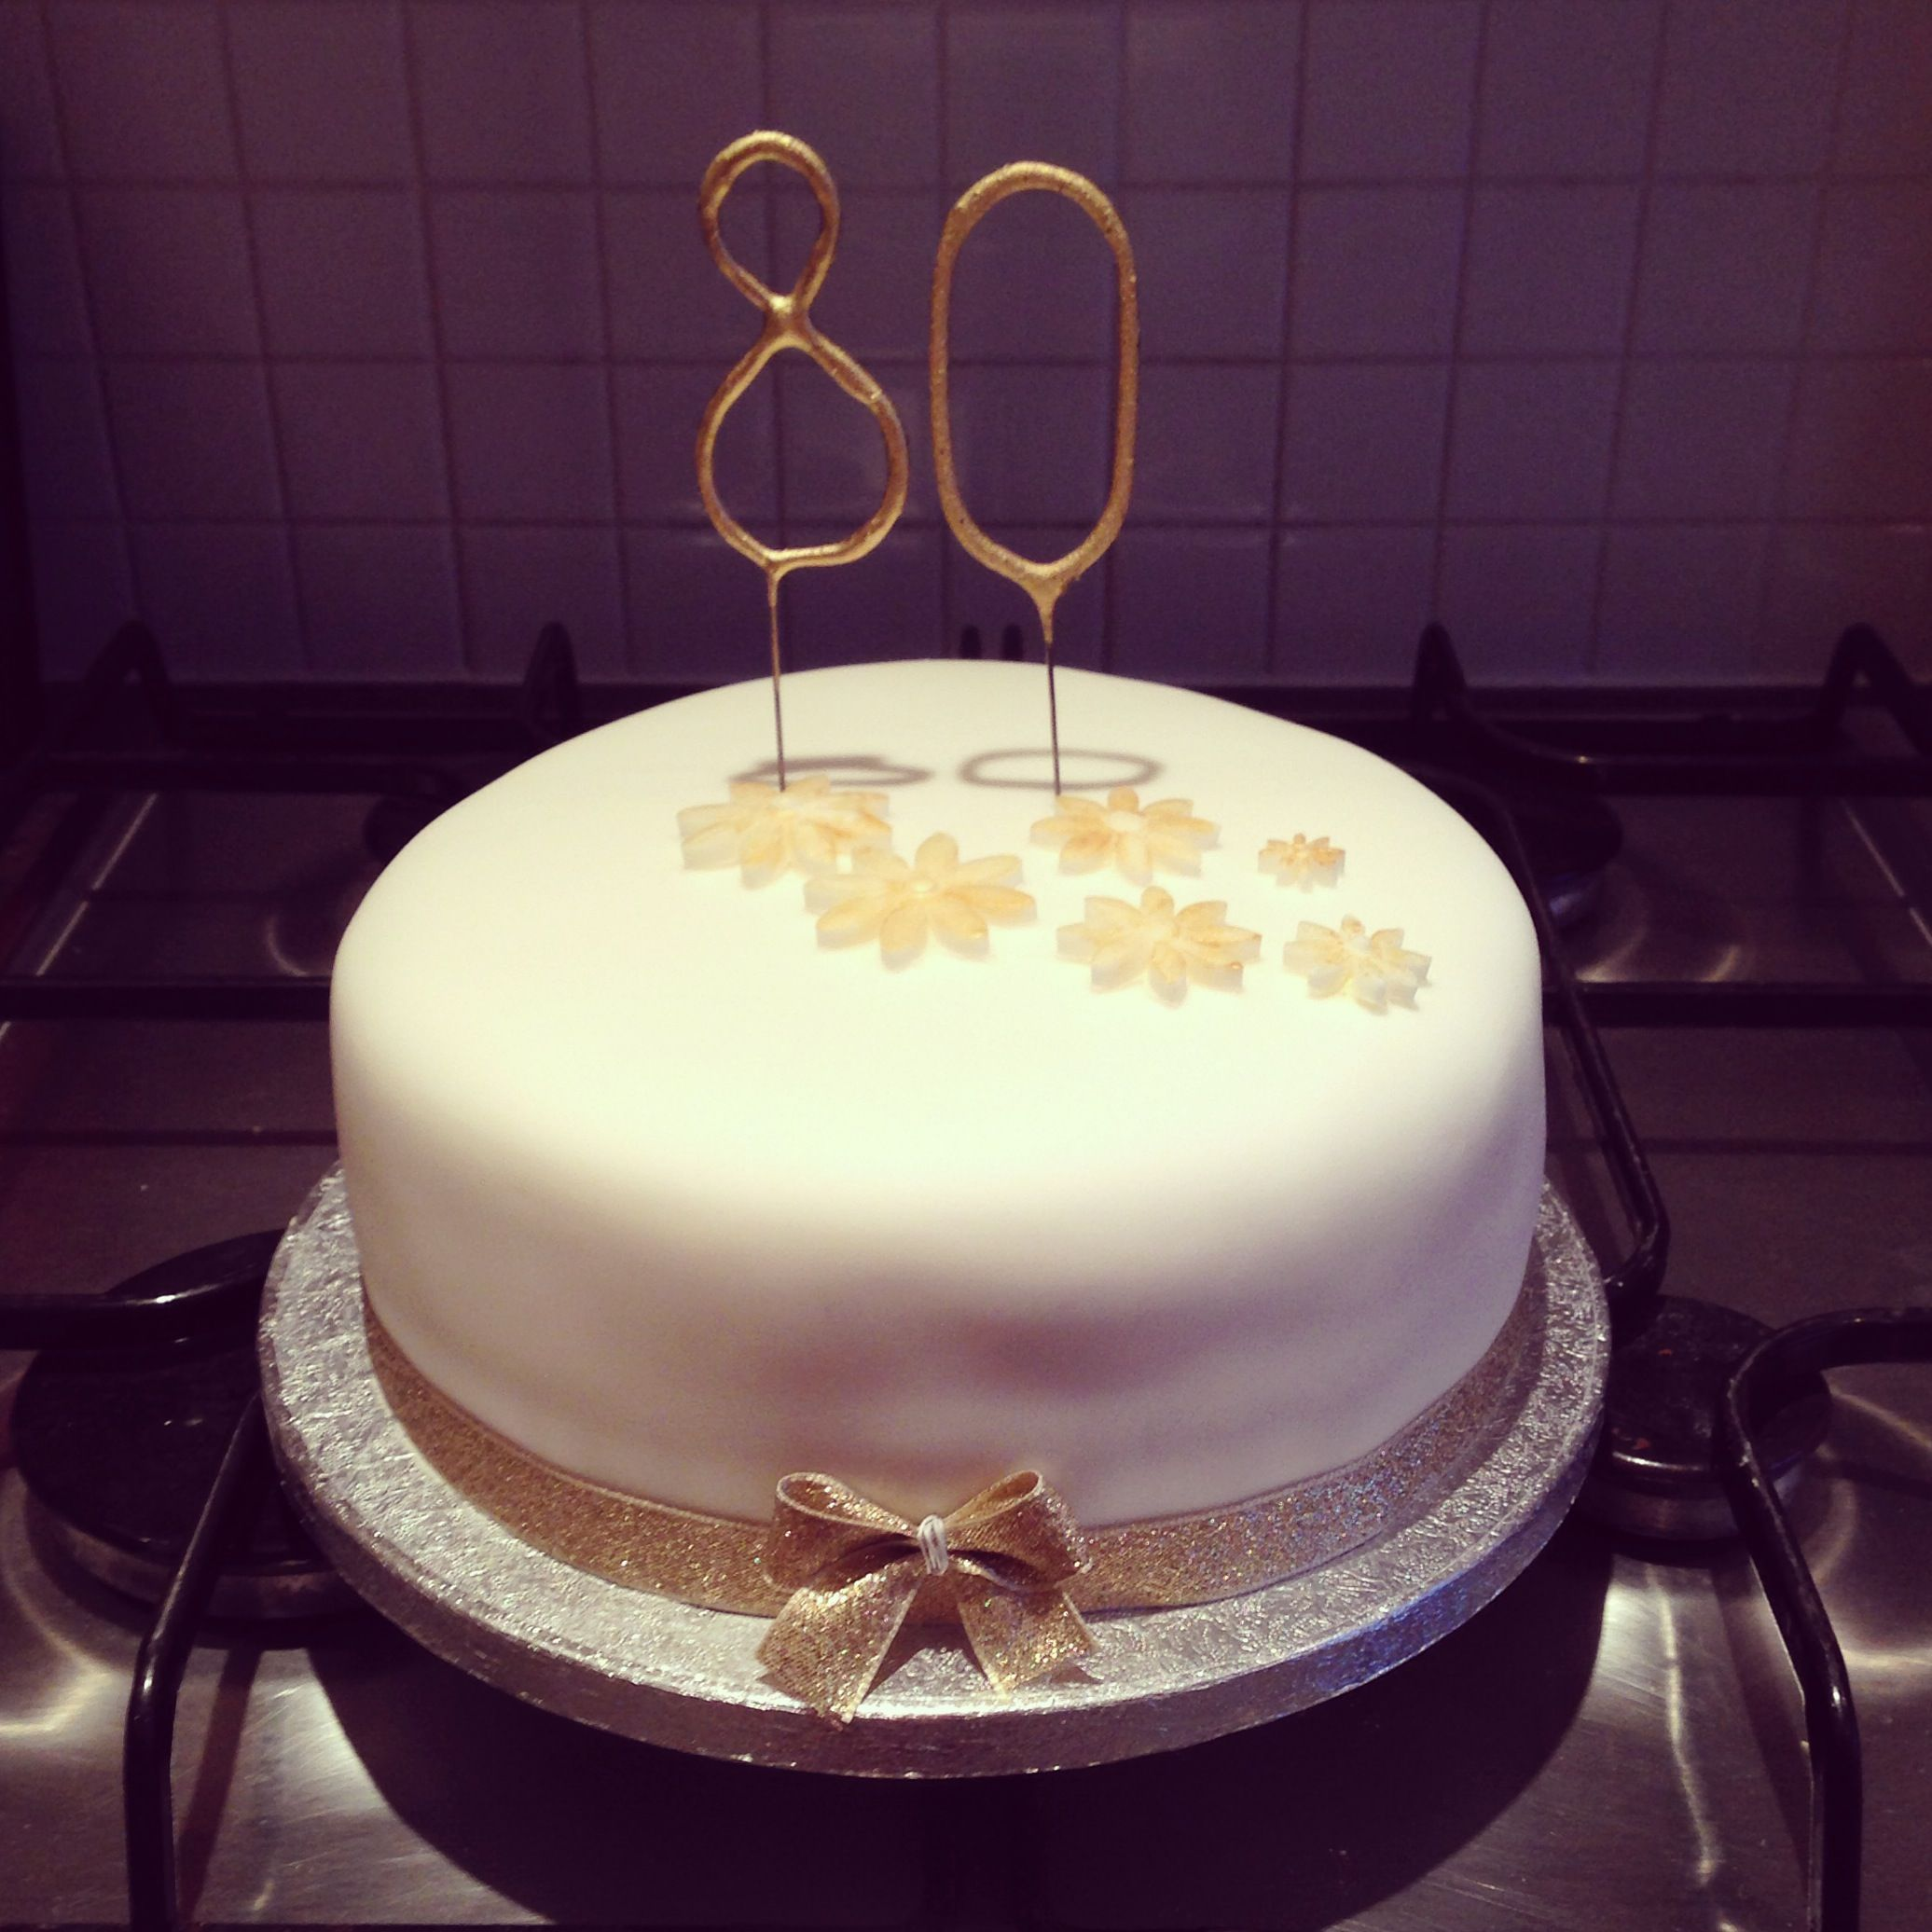 80th Birthday Cake A Simple 8 Inch Vanilla Sponge With Jam And